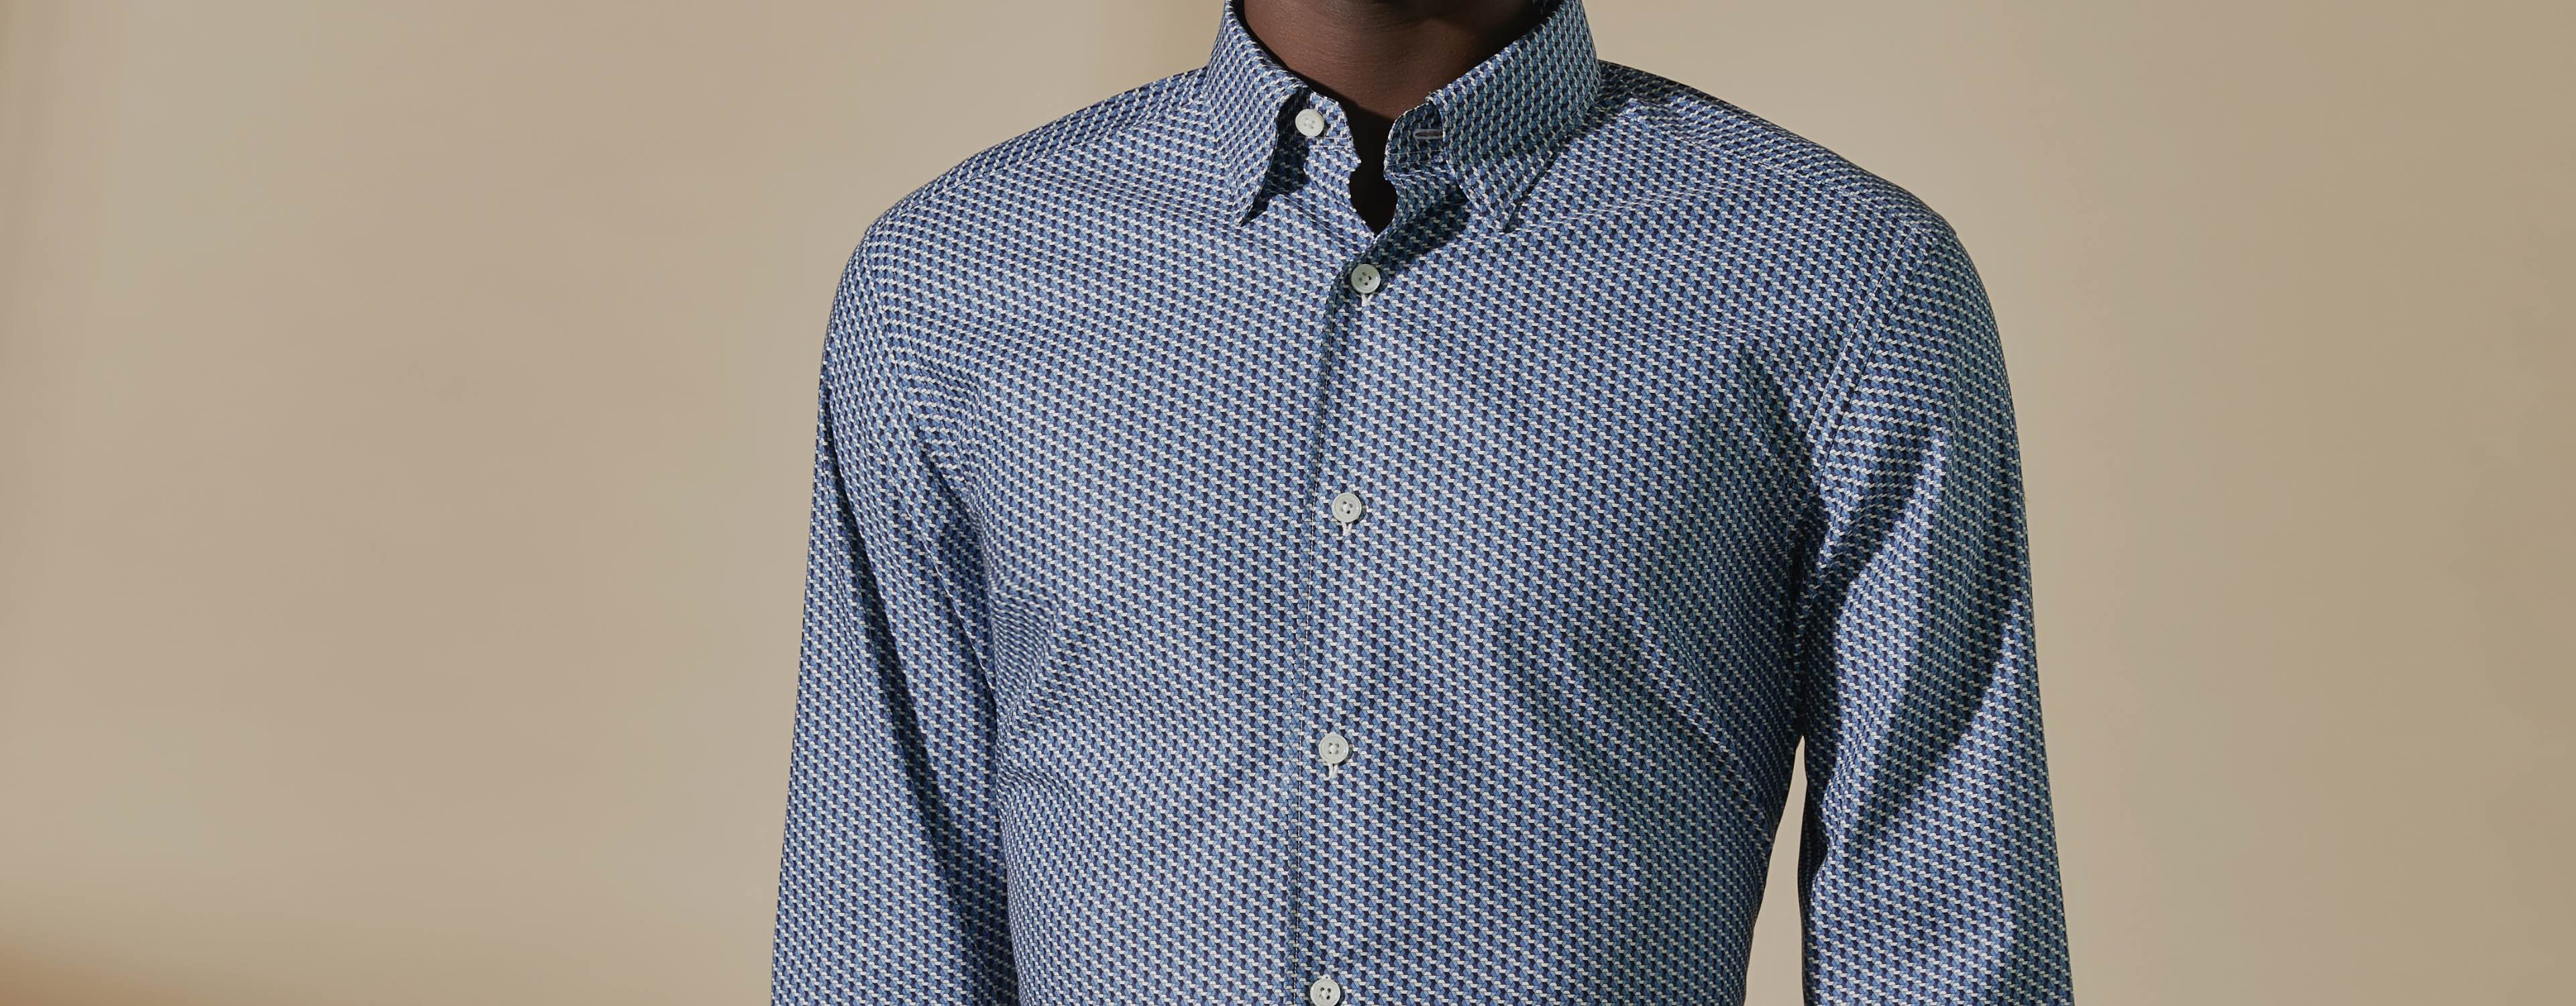 Comfortable casual shirts for everyday occasions | Zegna